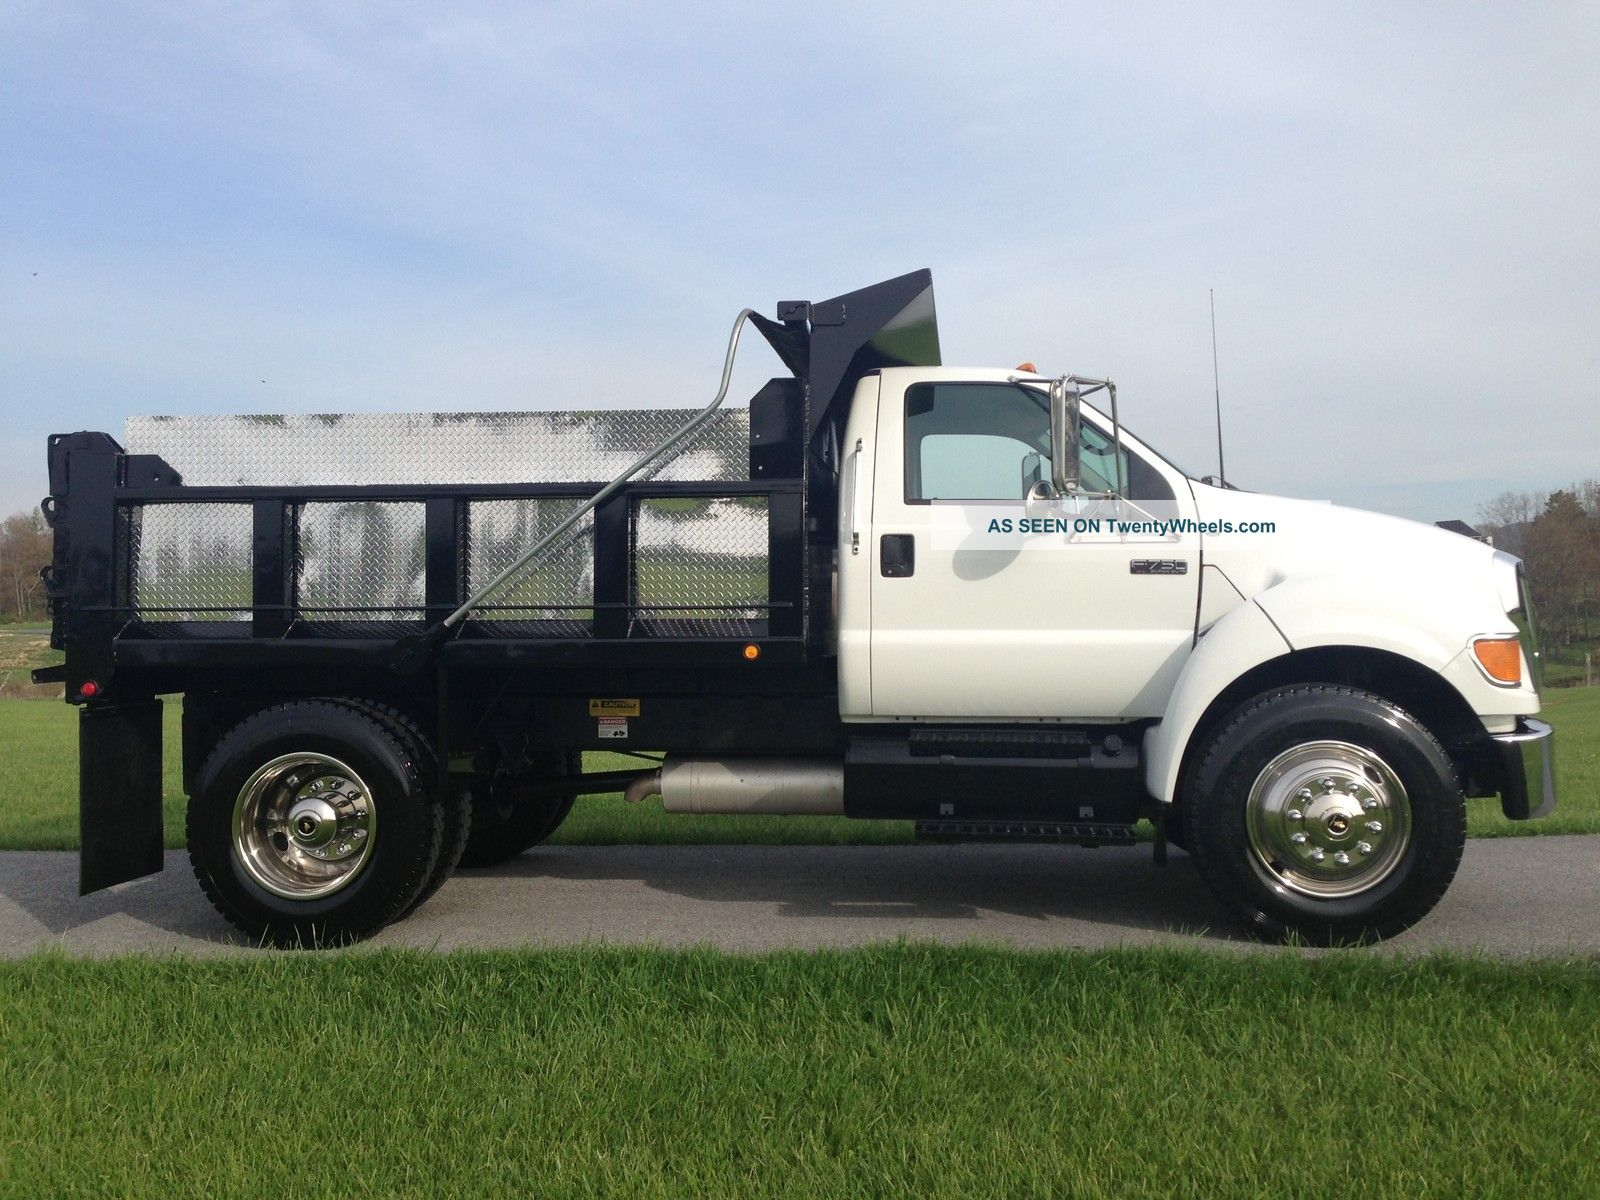 Ford f-750 photo - 2